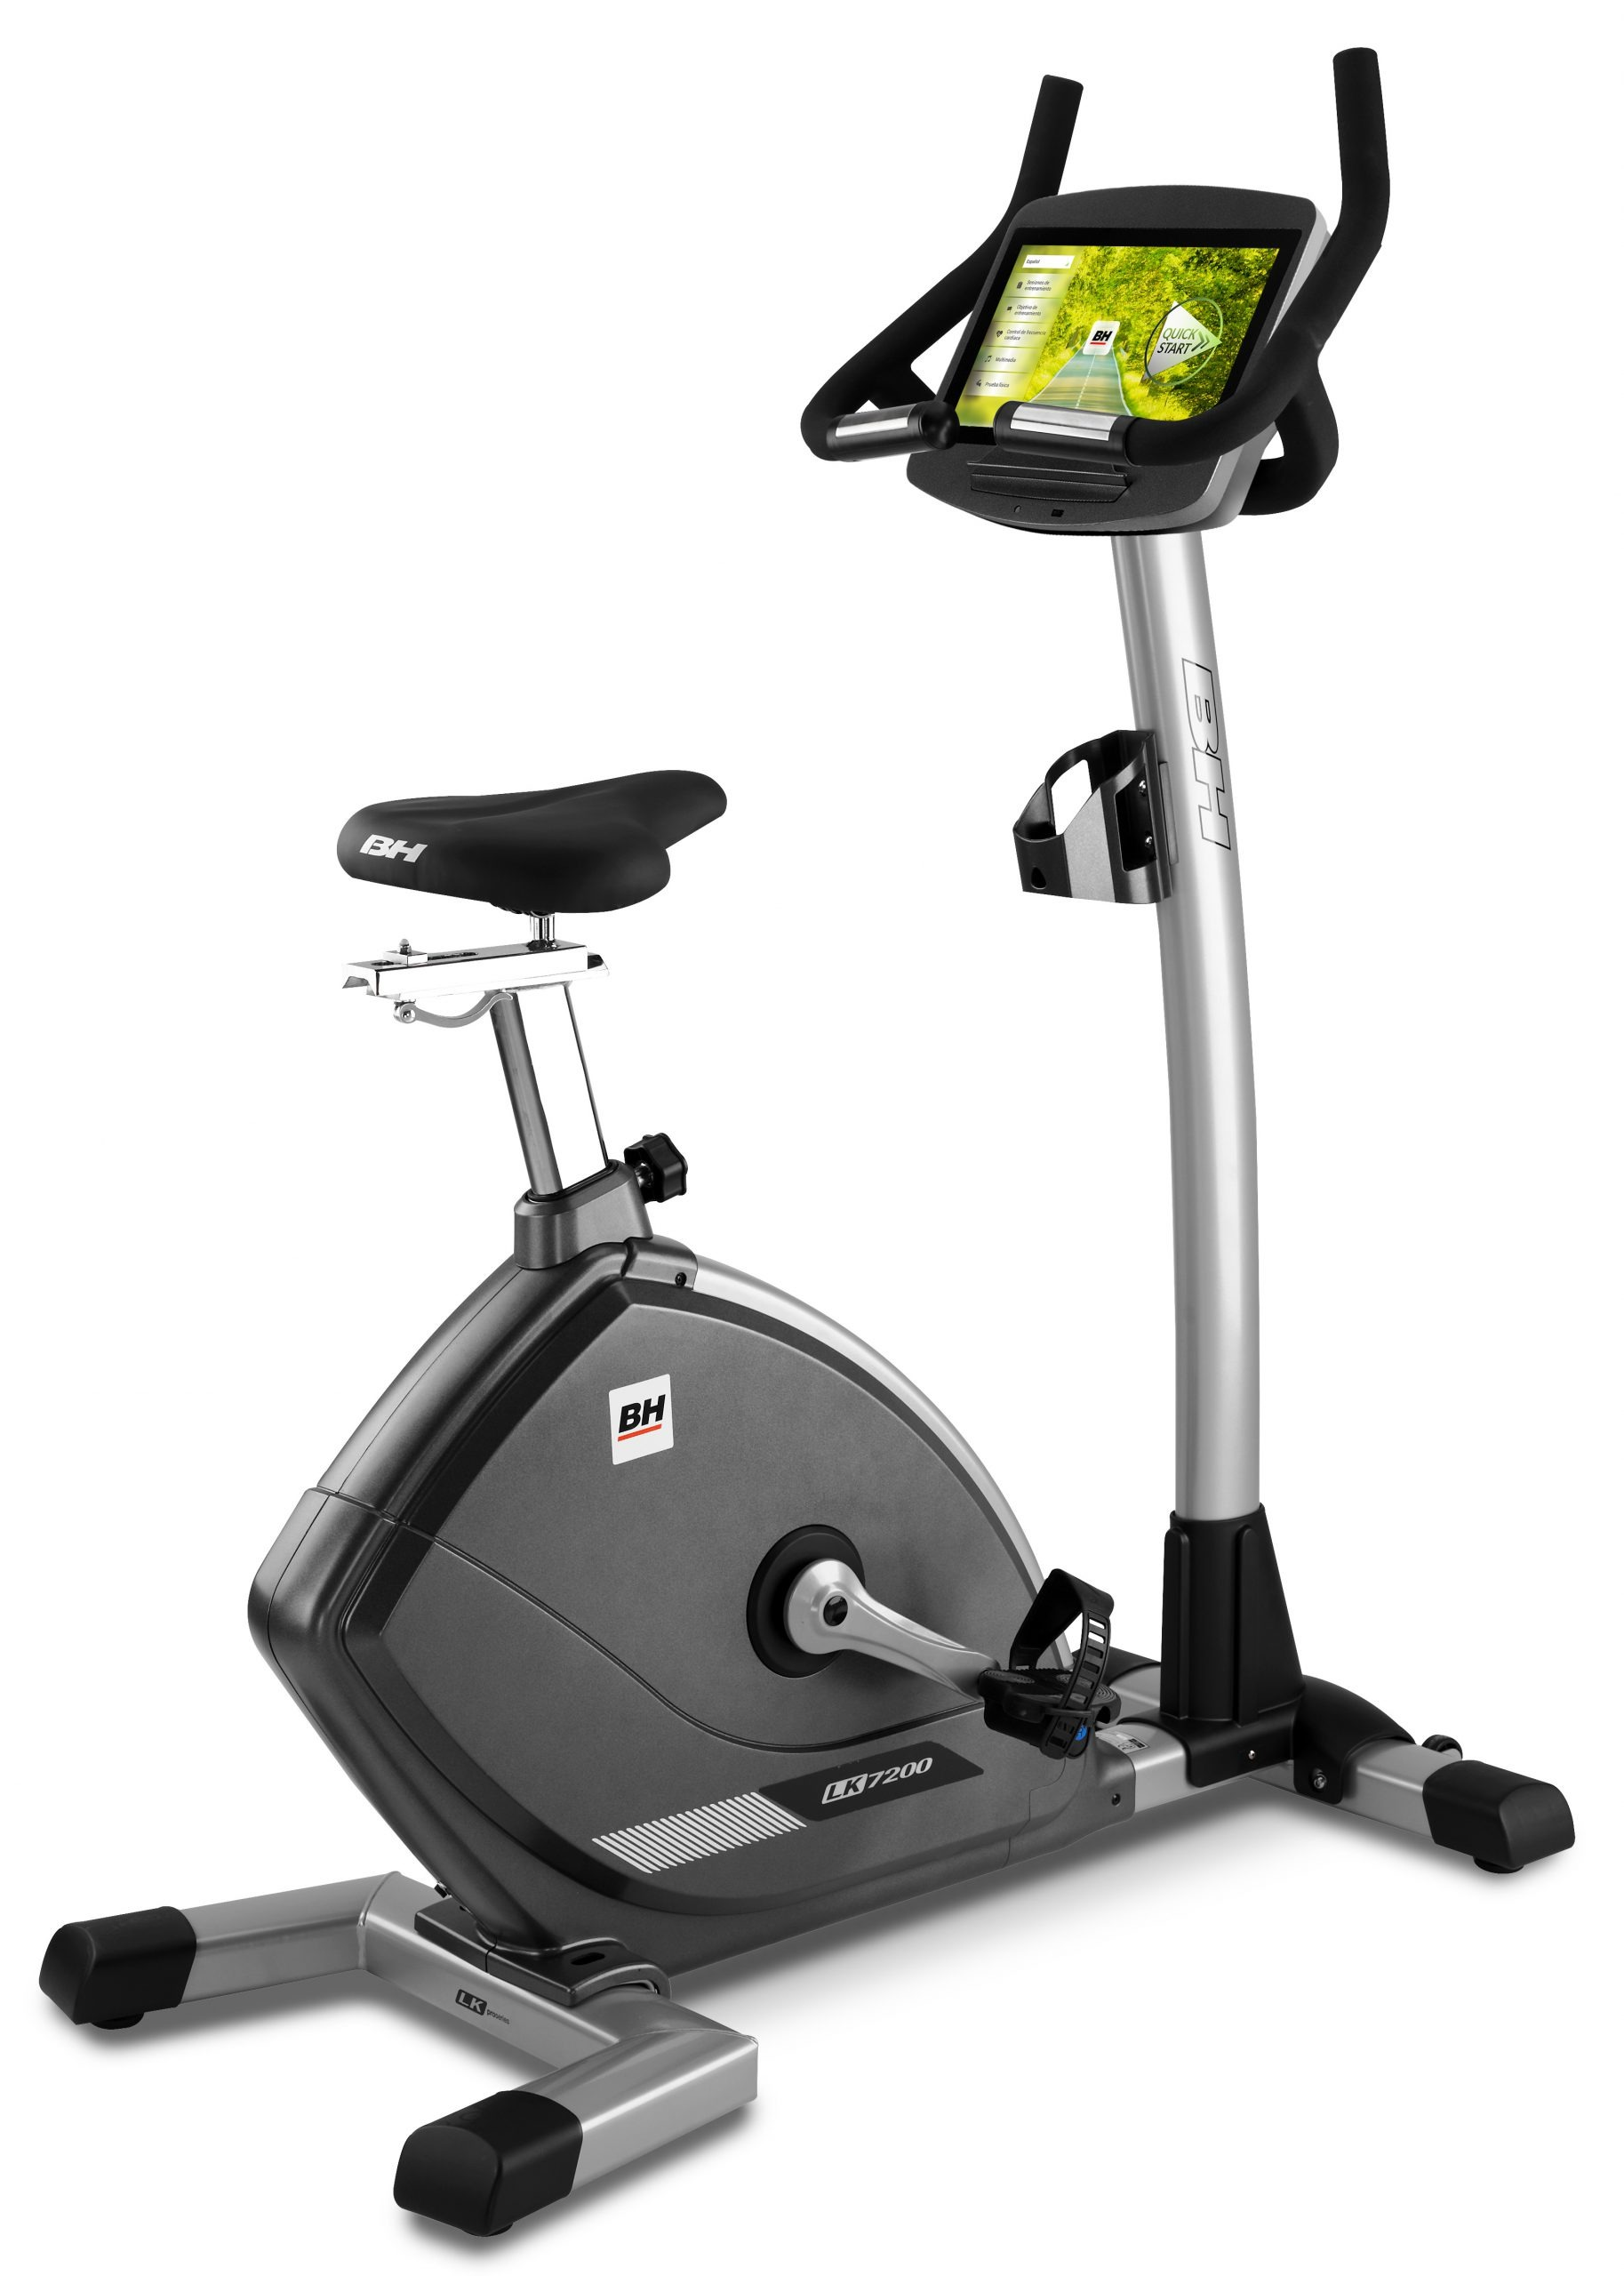 H720 Upright Bike_SmartFocus